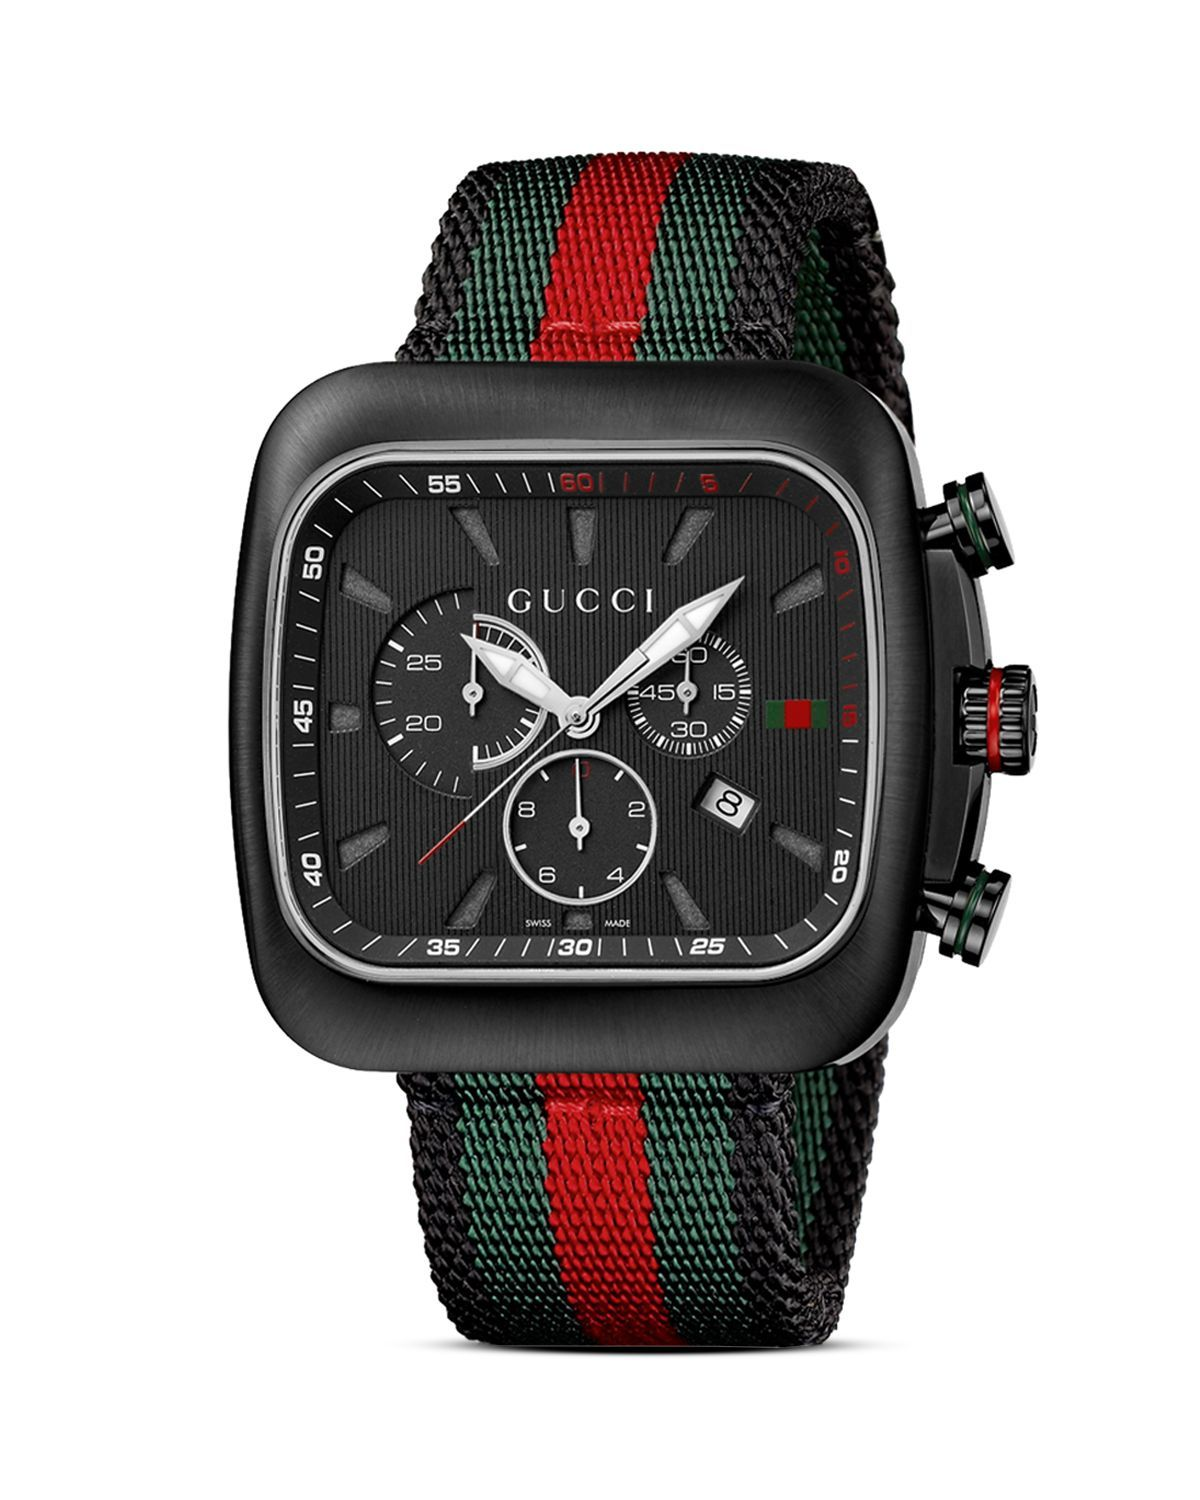 6838b34efc3 The Gucci Coupé range of watches takes inspiration from the House s golden  eras and echoes the fluid lines of a sports car with a rounded-square  silhouette.